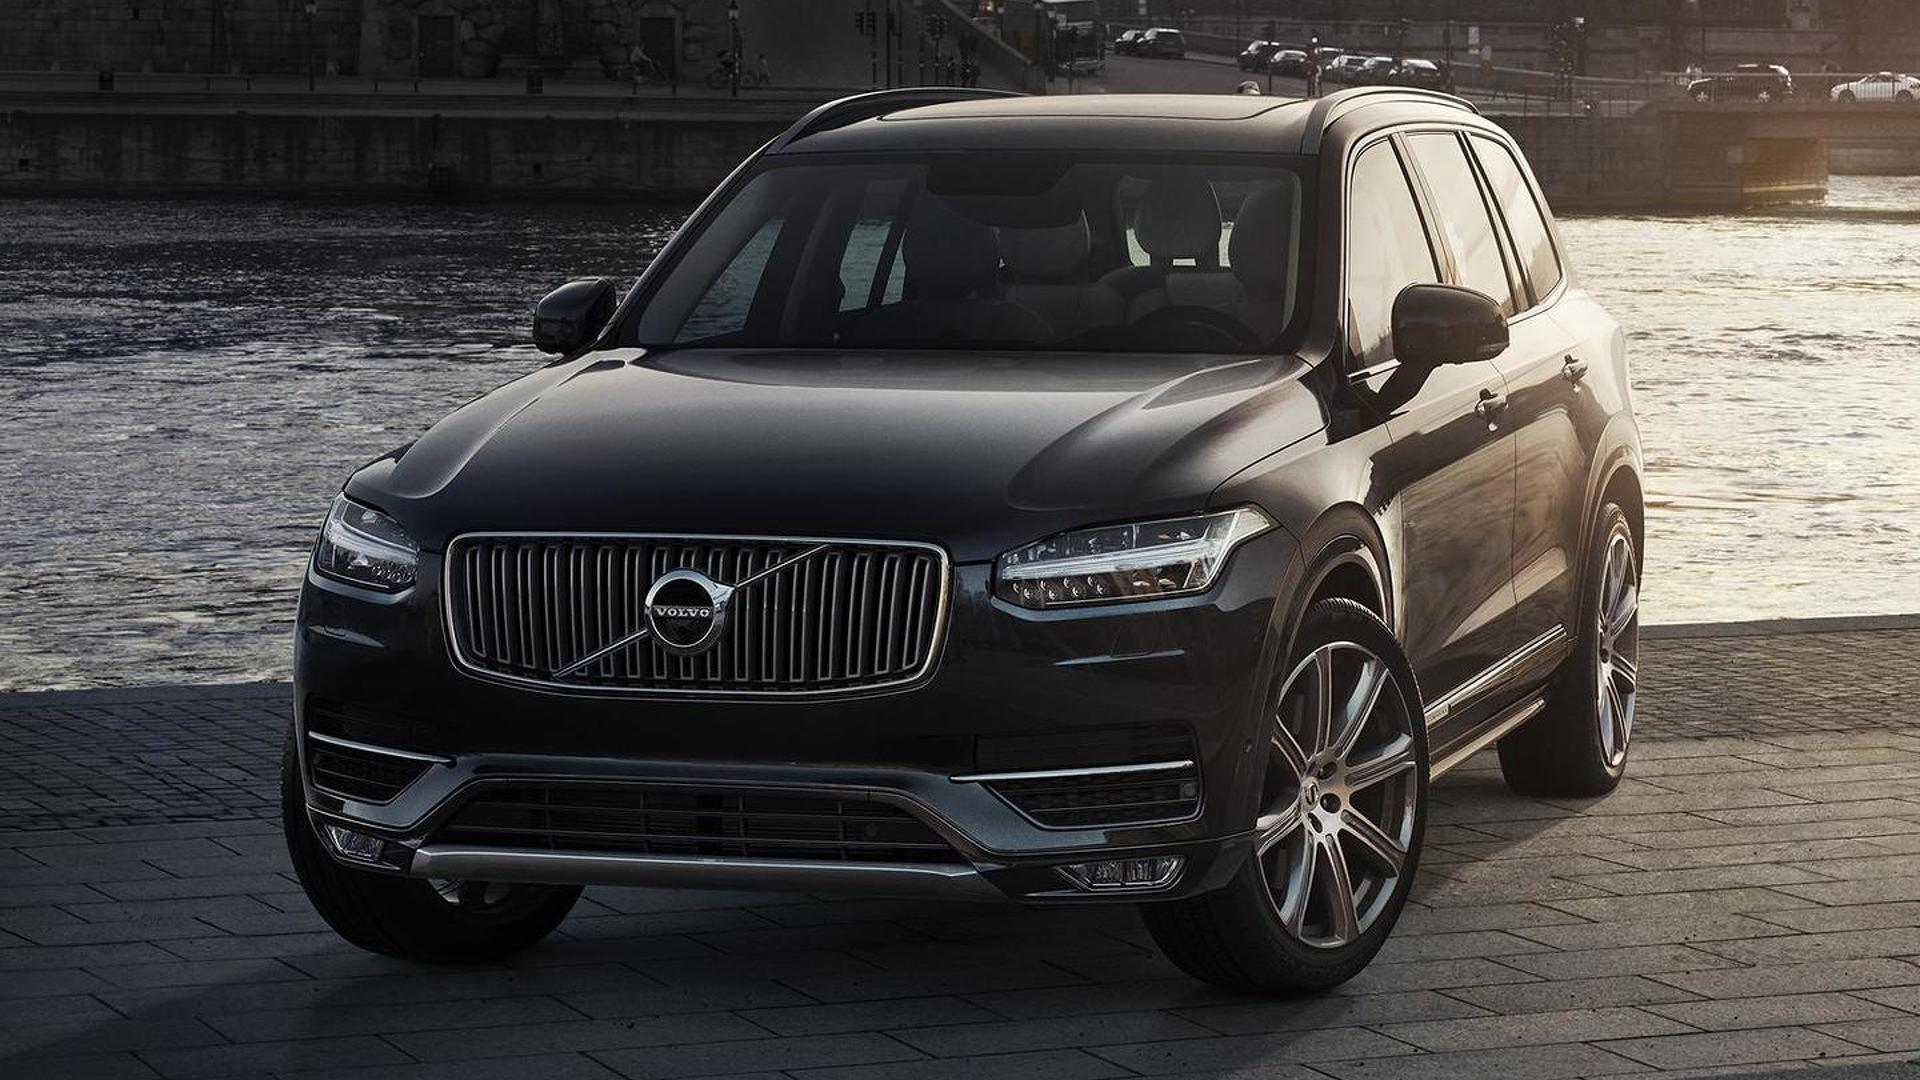 2015 Volvo XC90 test drive - safety and dynamism